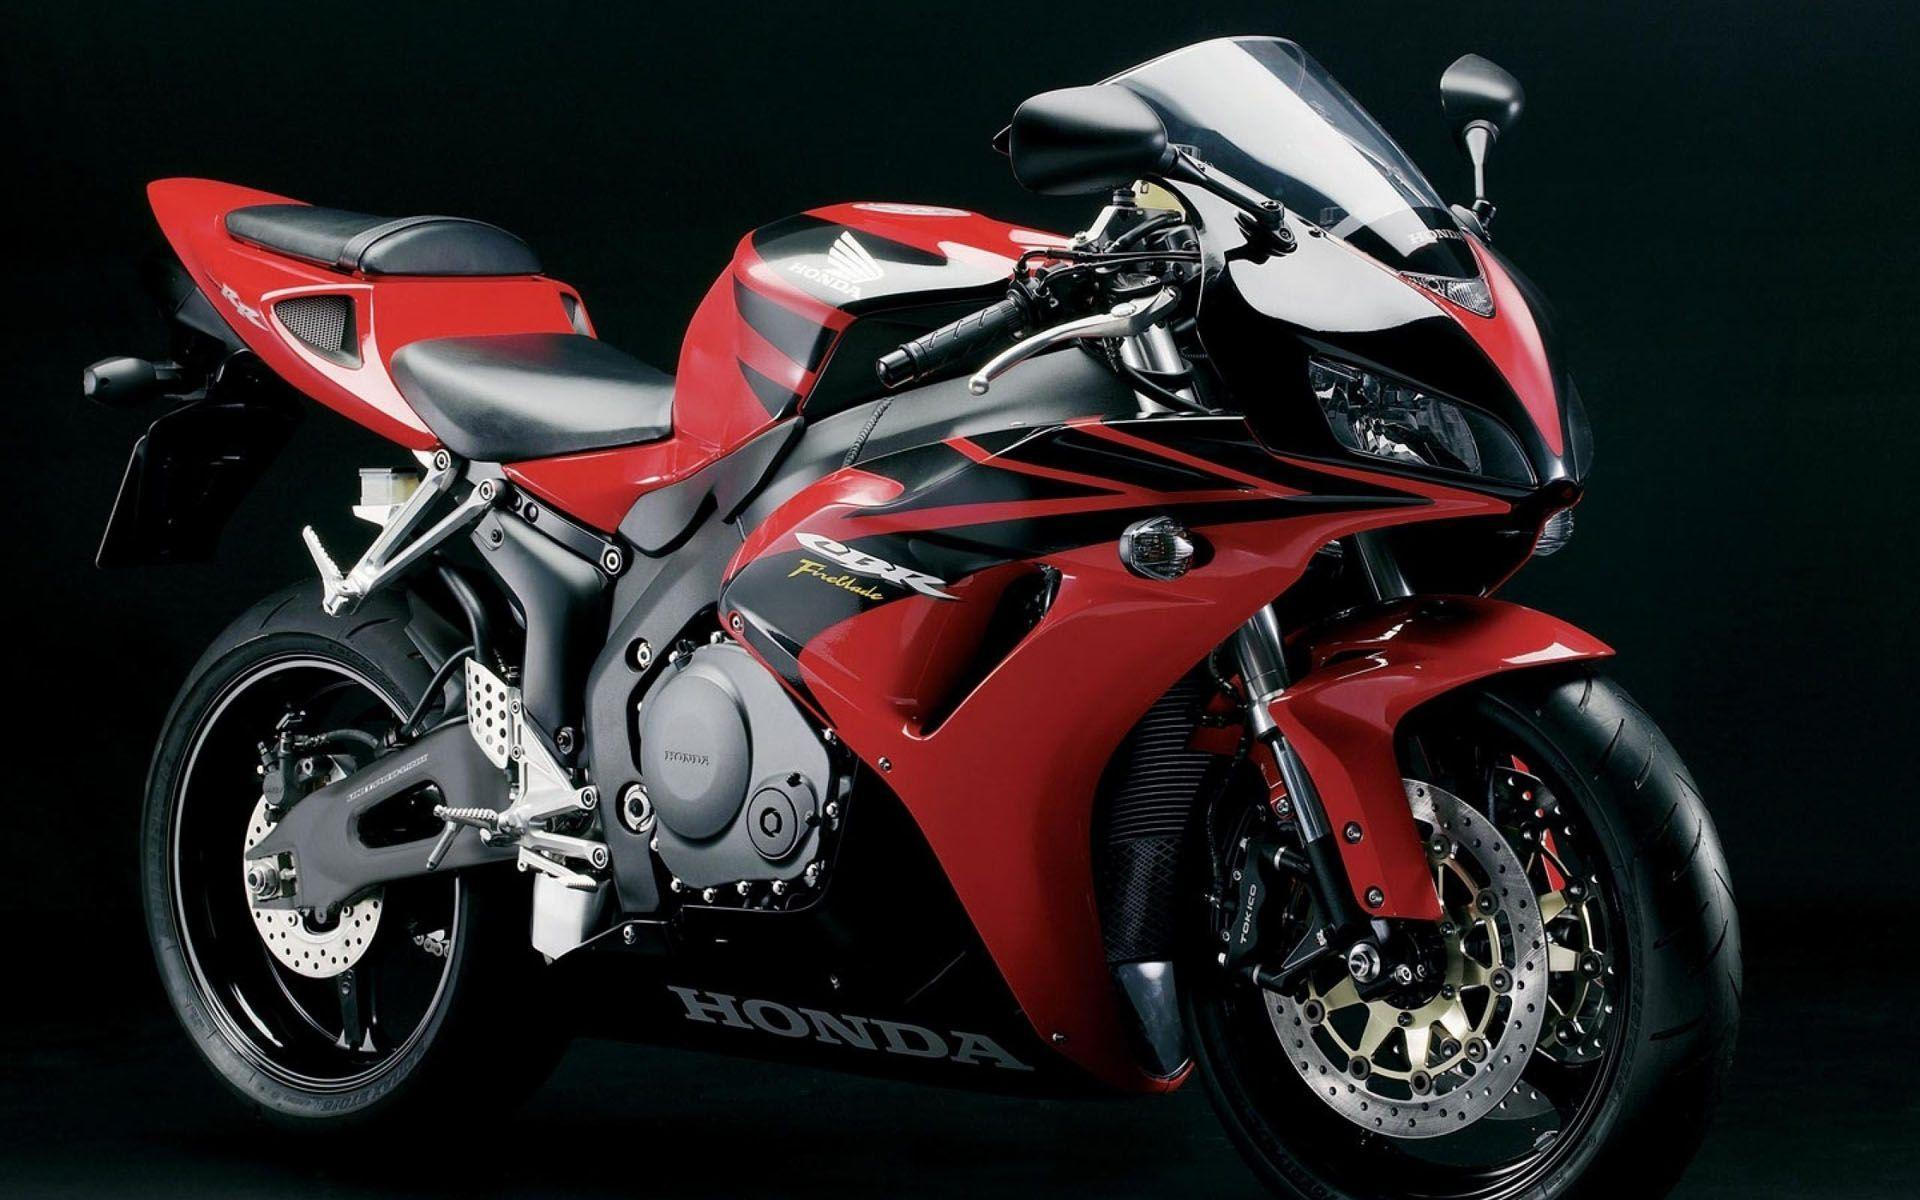 Sport Bikes Wallpapers For Android: Free Sports Screensavers And Wallpapers